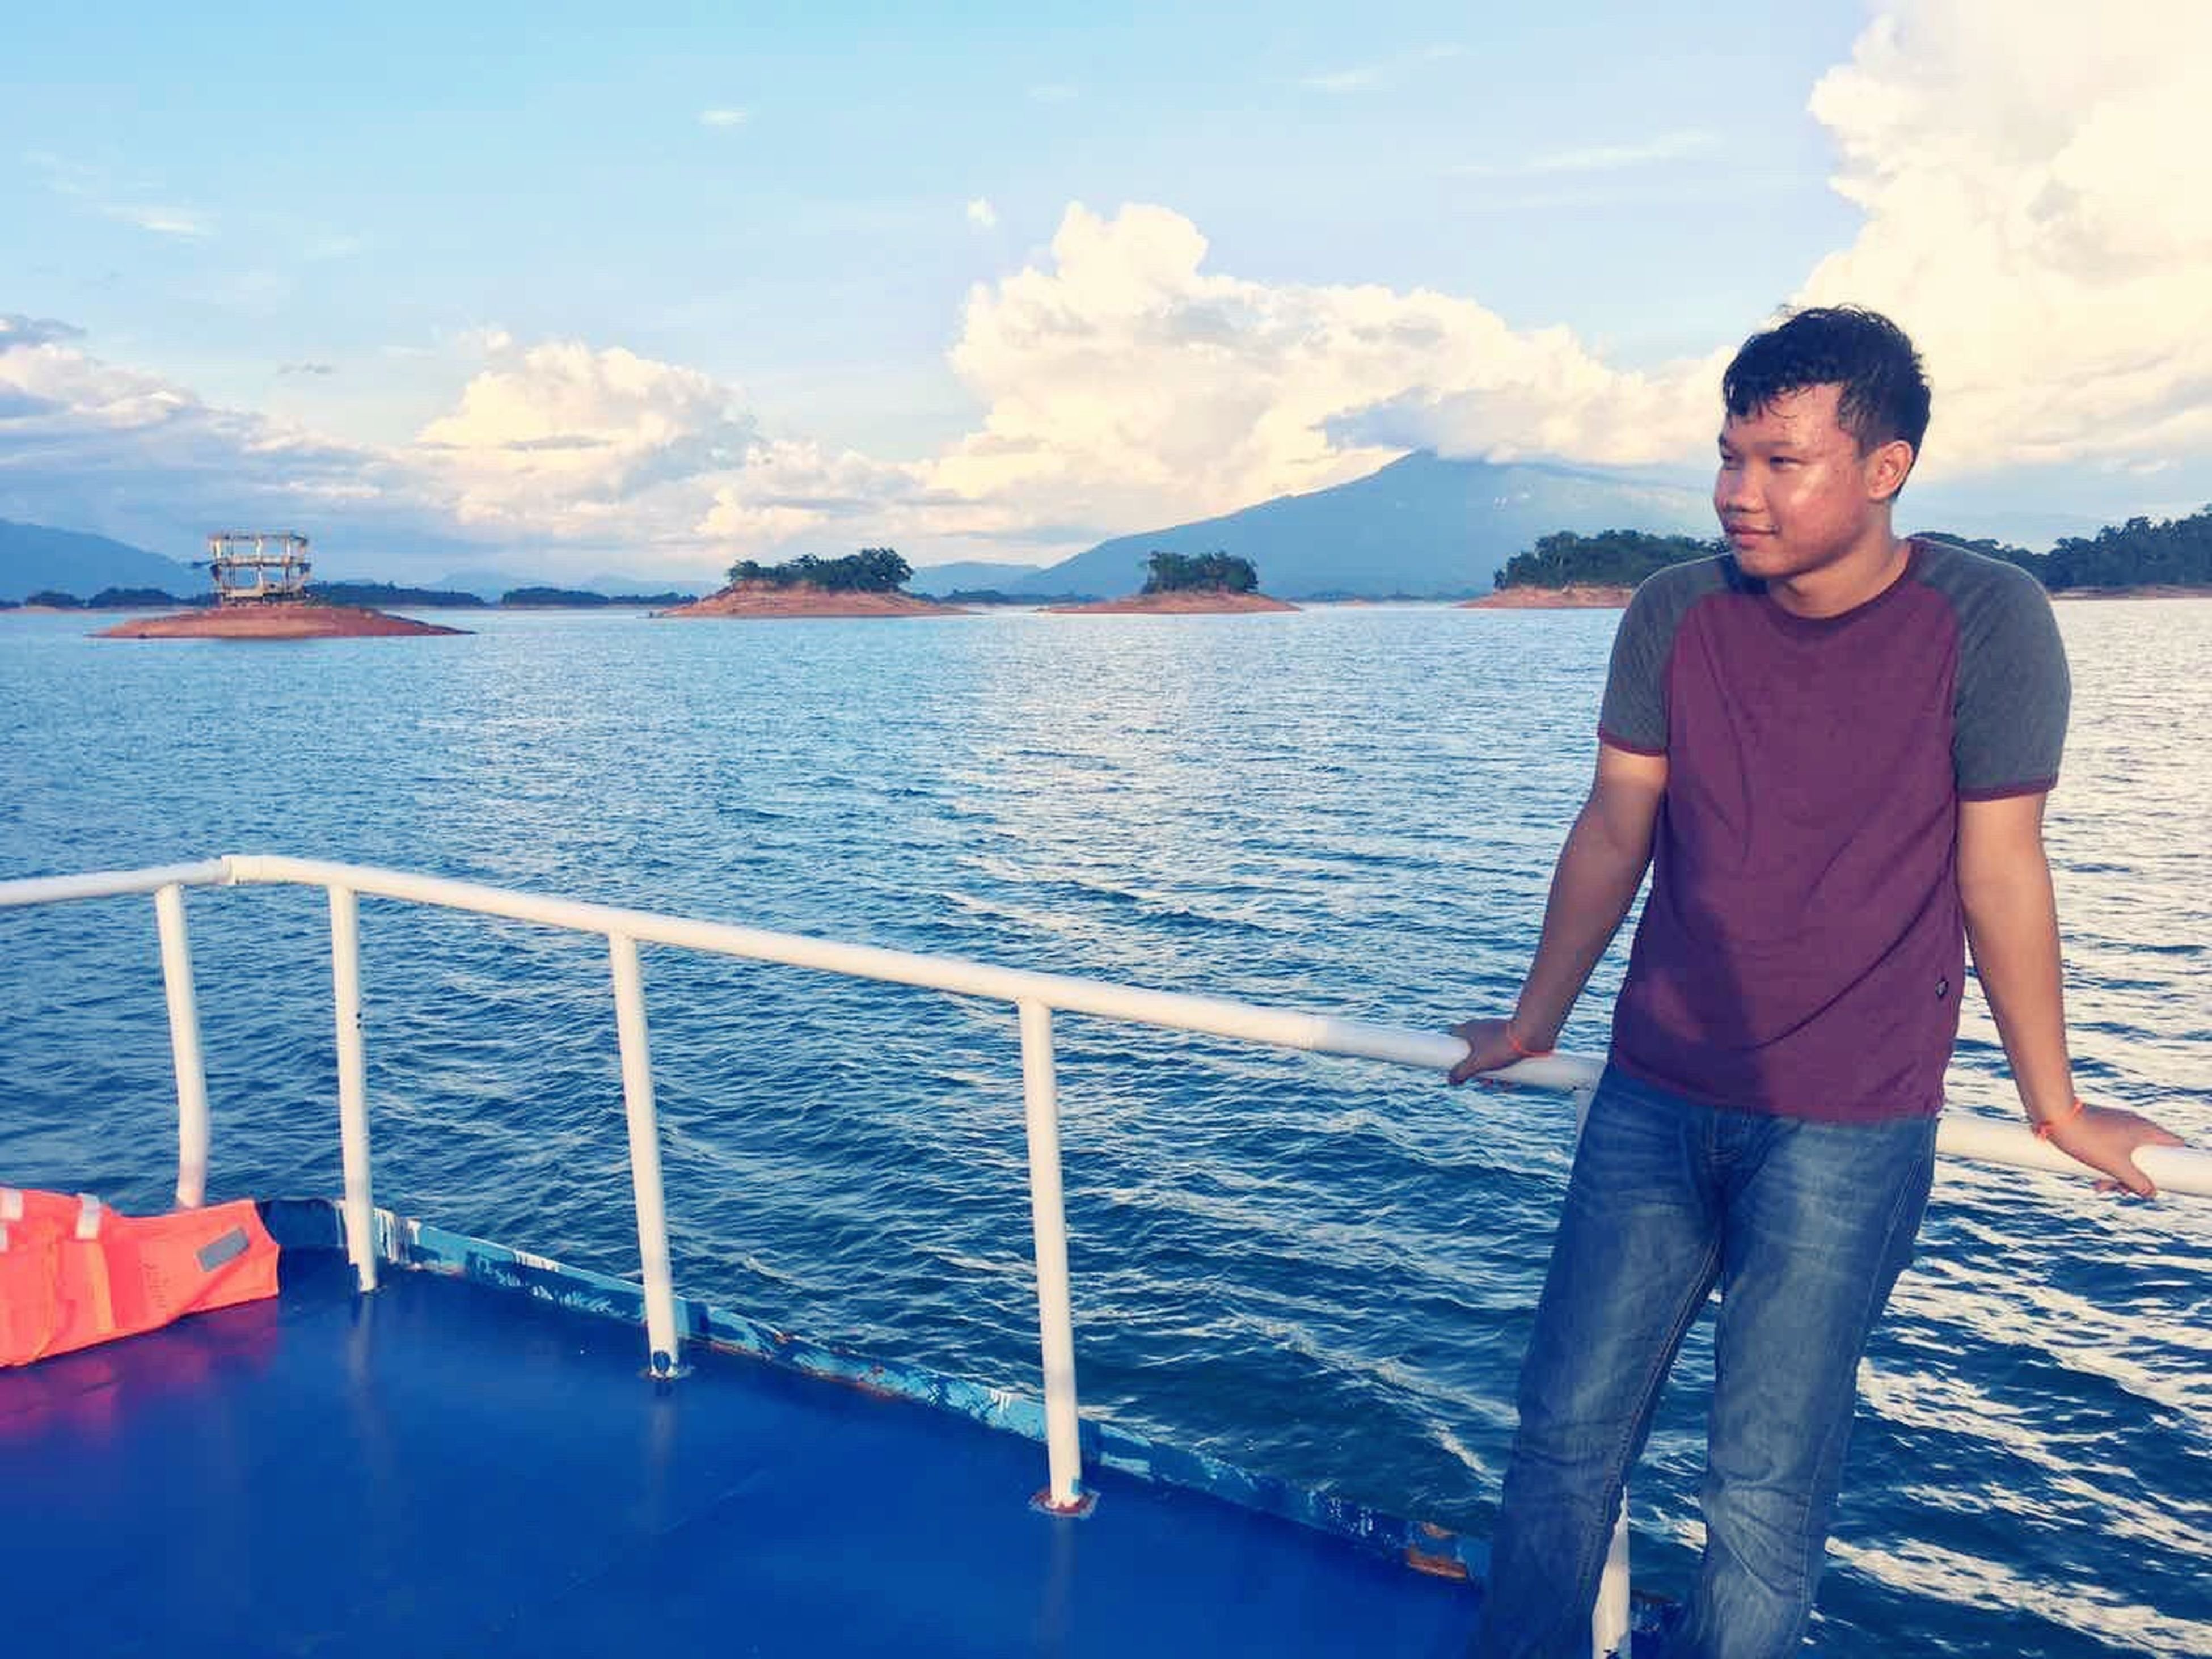 water, sea, lifestyles, sky, leisure activity, standing, casual clothing, railing, full length, nautical vessel, person, vacations, blue, pier, nature, scenics, travel, three quarter length